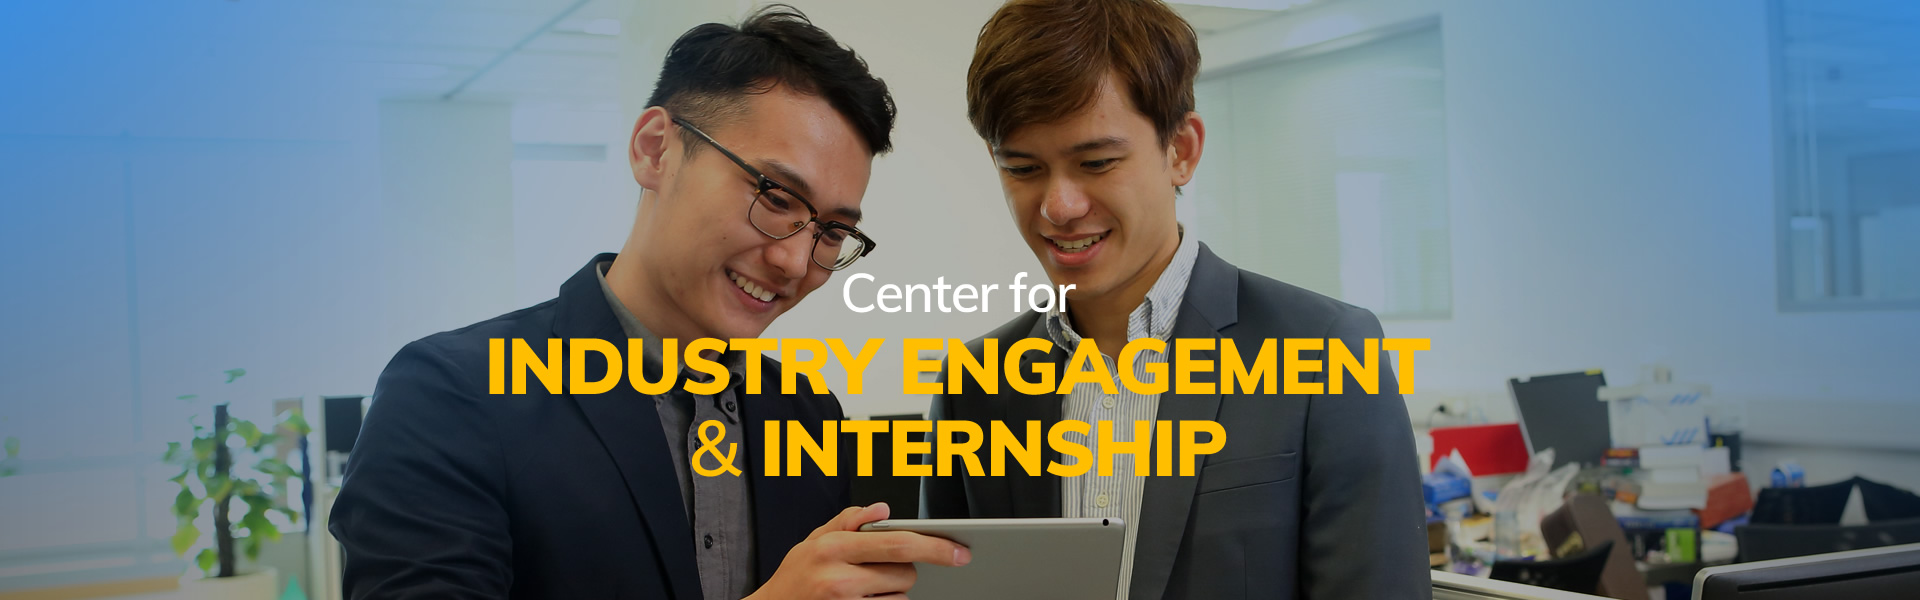 Center for Industry Engagement & Internship